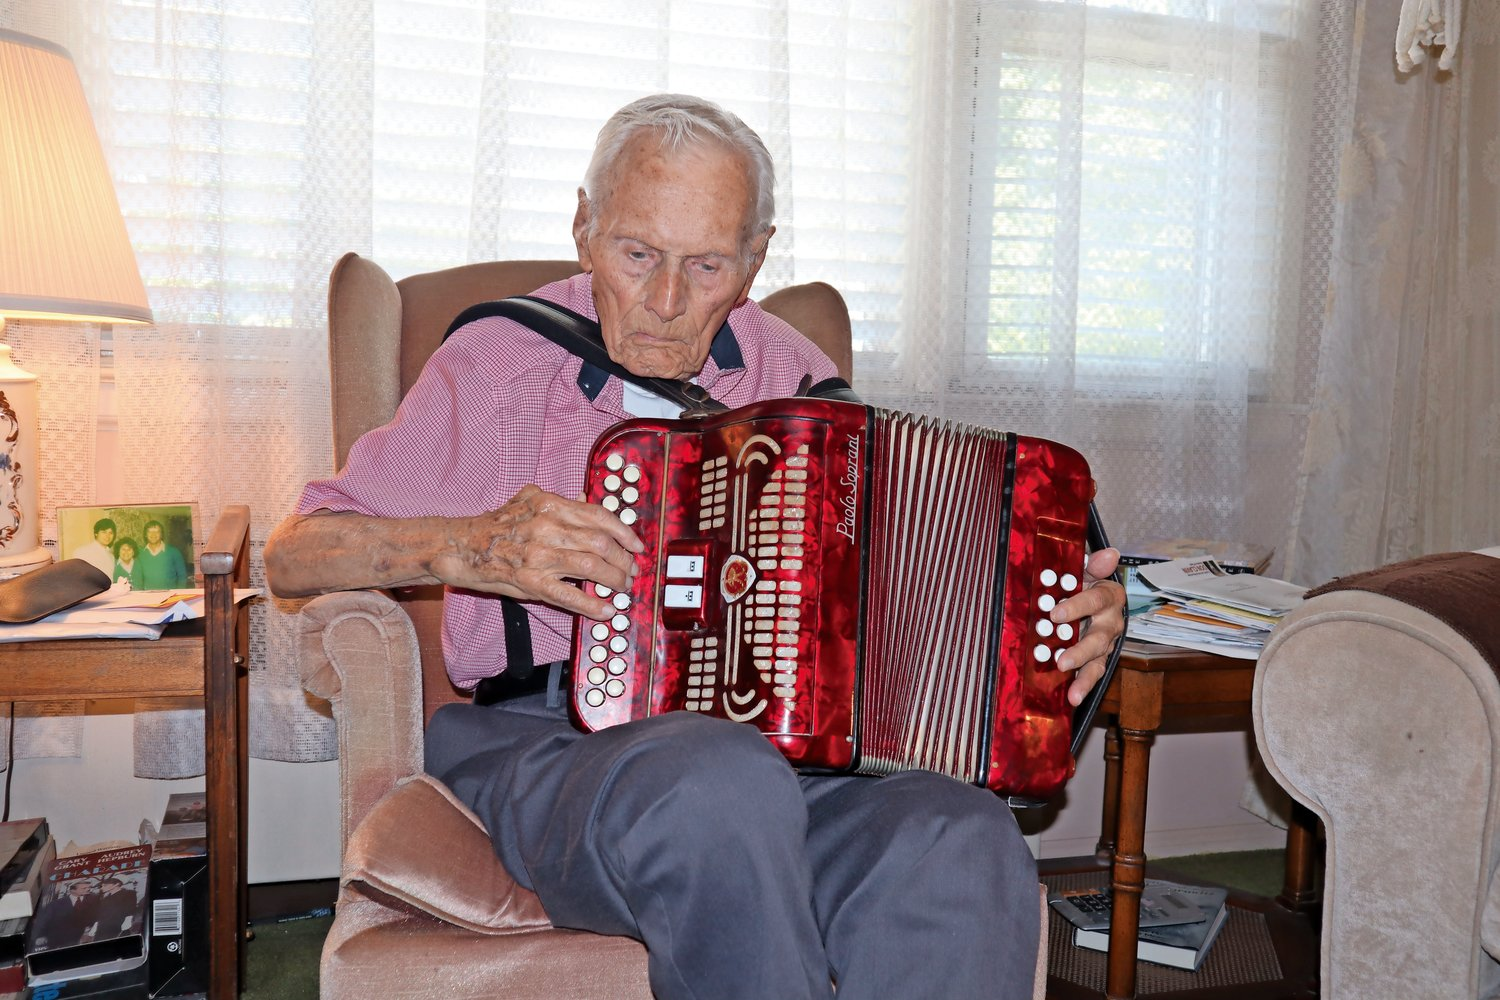 Conlin practiced his accordion regularly, even at 100.